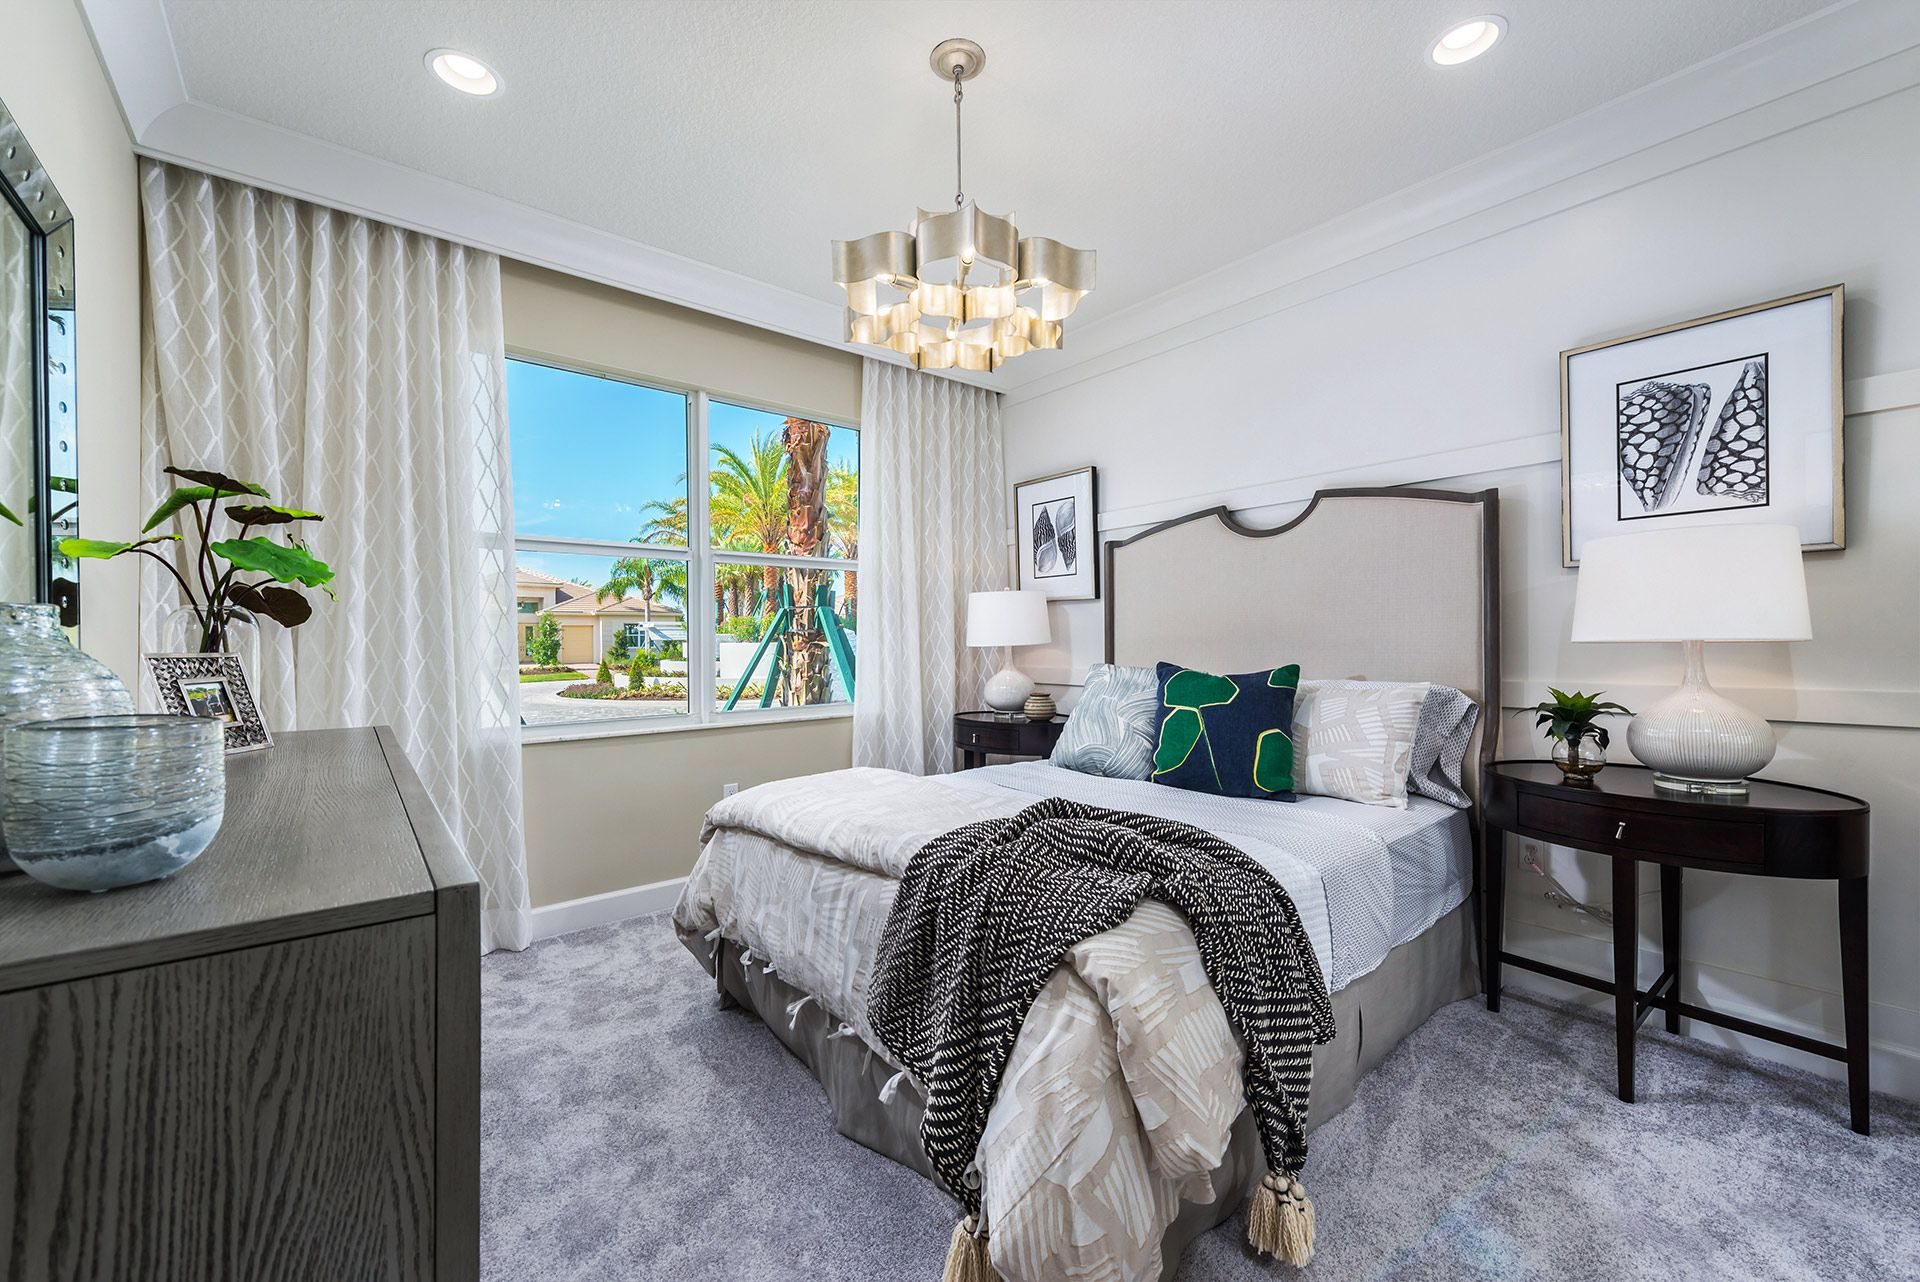 Bedroom featured in the Bimini By GL Homes in Martin-St. Lucie-Okeechobee Counties, FL